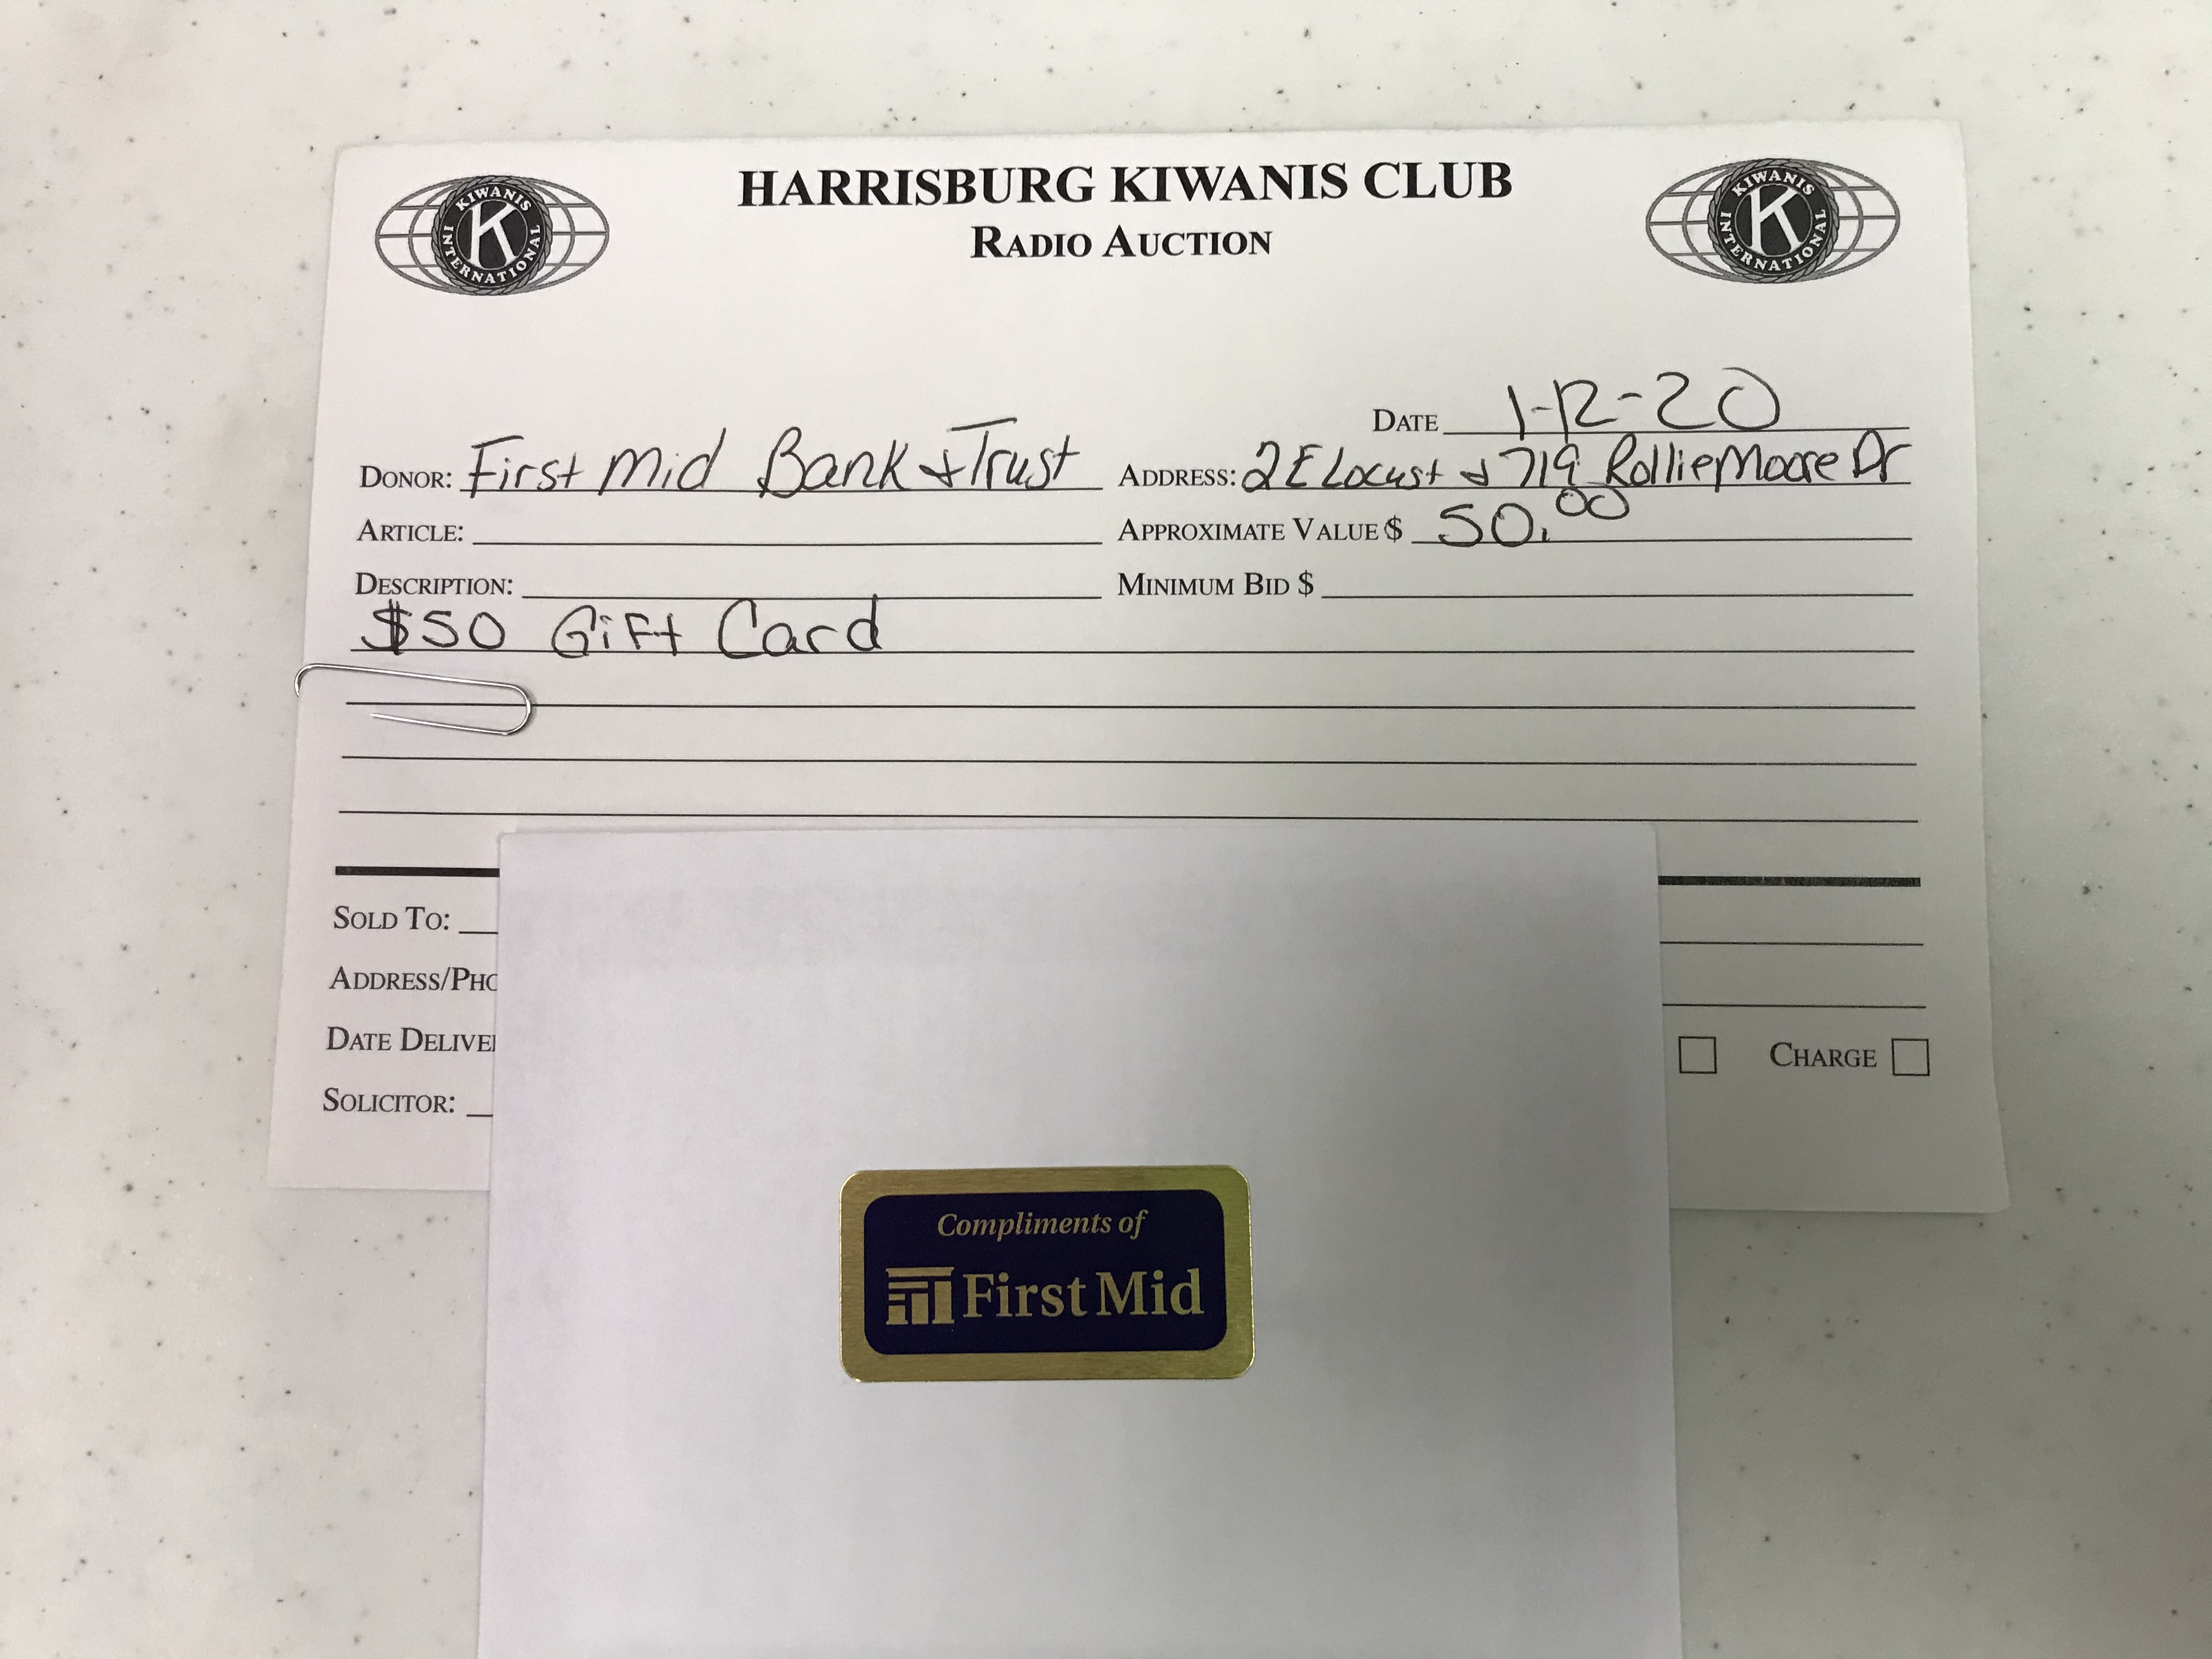 Item 413 - First Mid Bank & Trust $50 Visa Gift Card